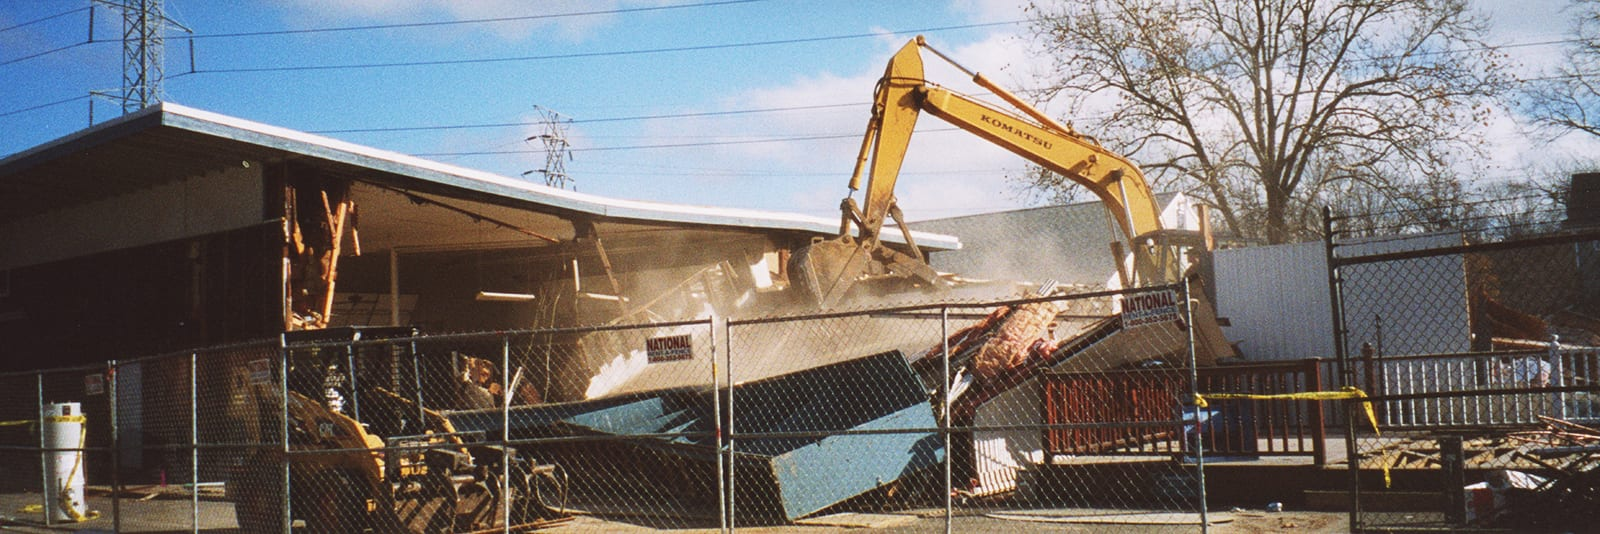 Old Building being demolished